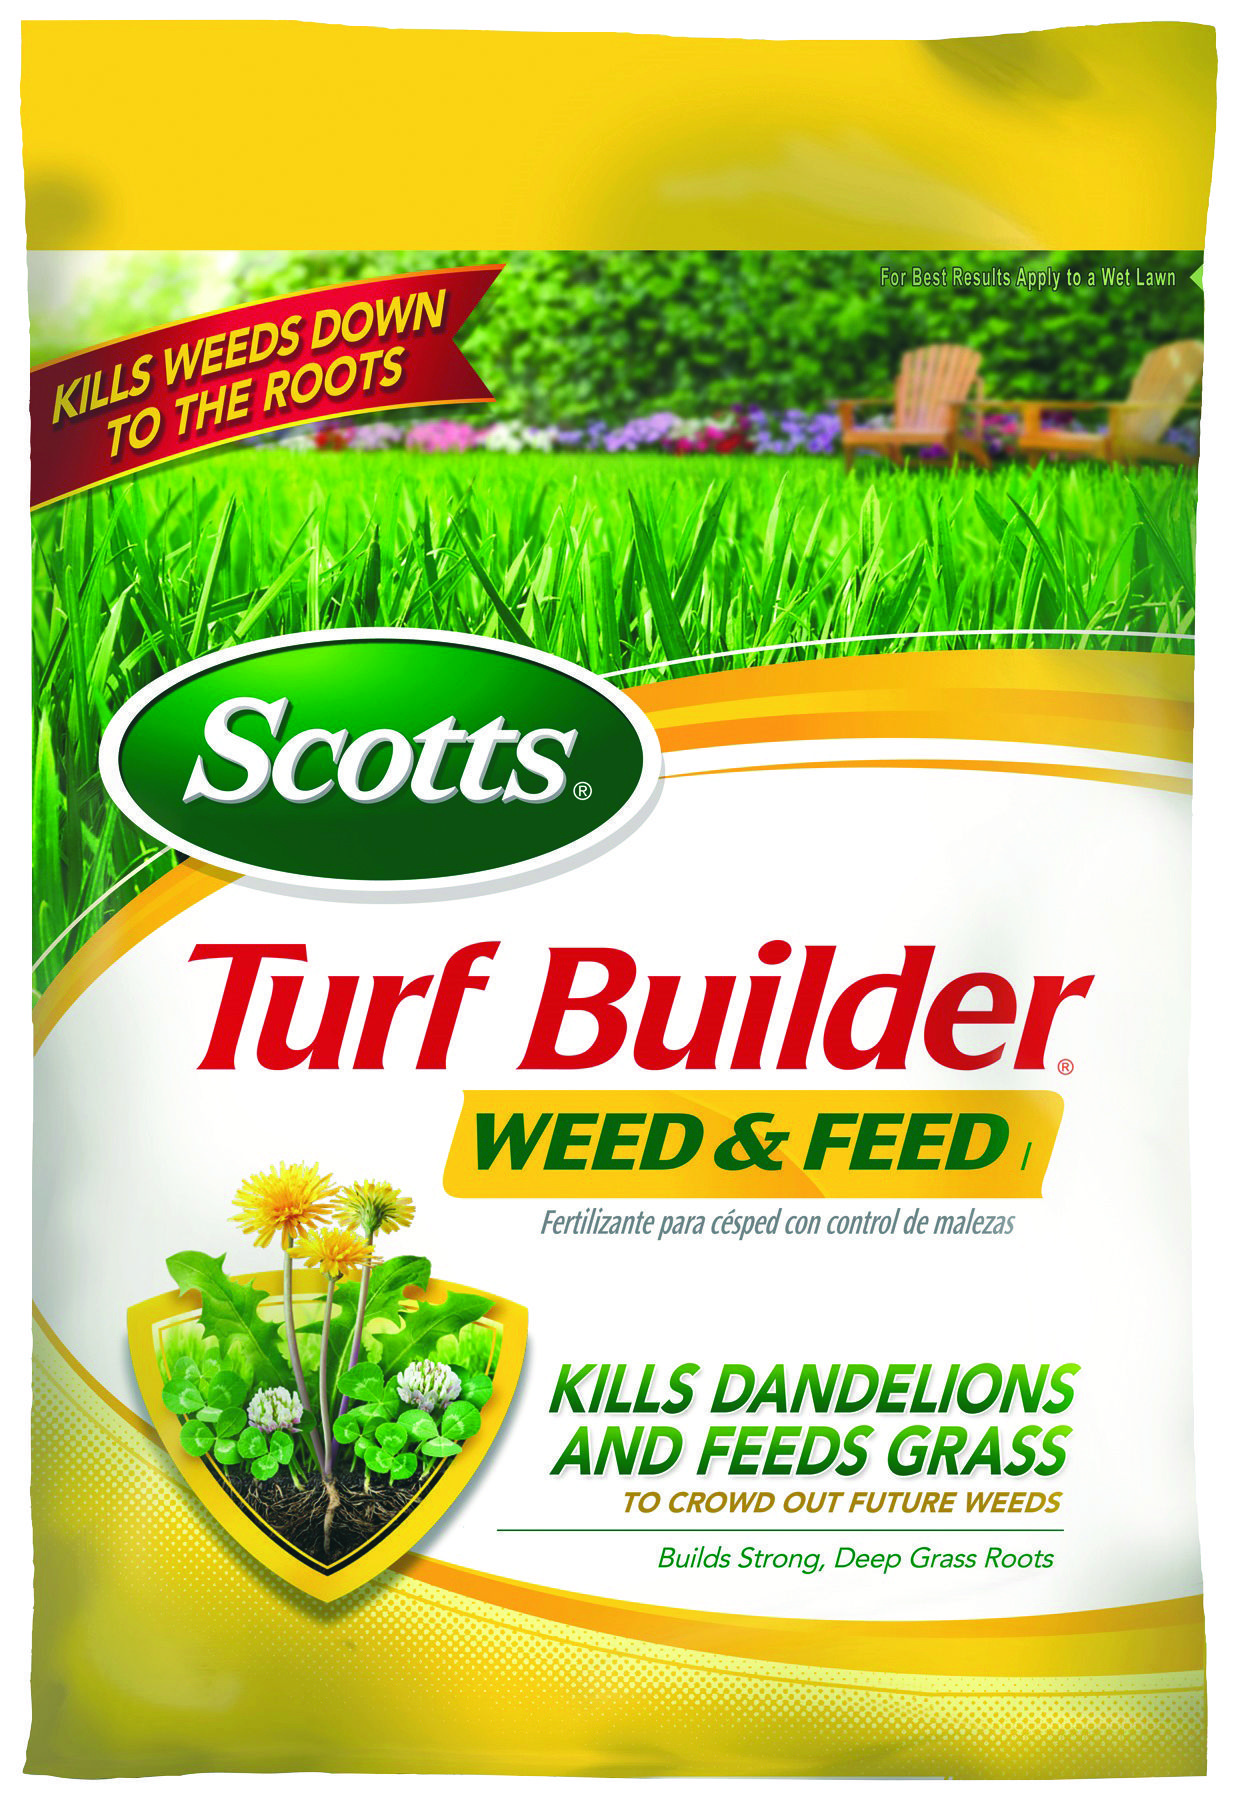 Kill dandelions and other major lawn weeds quickly with scotts turf